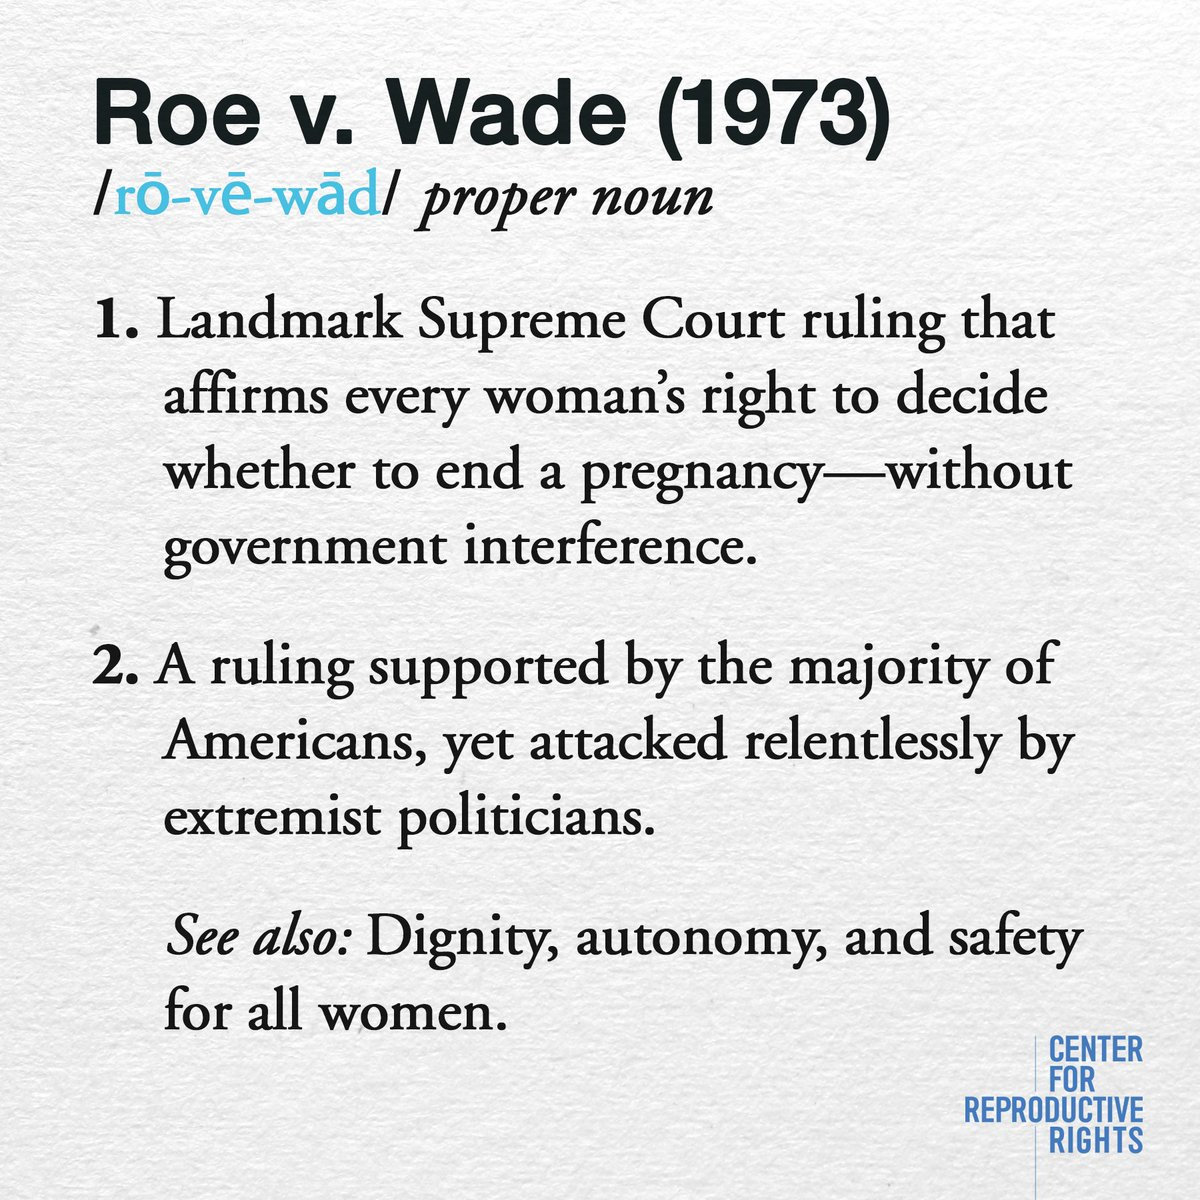 Today is the 44th anniversary of the landmark Supreme Court ruling Roe...